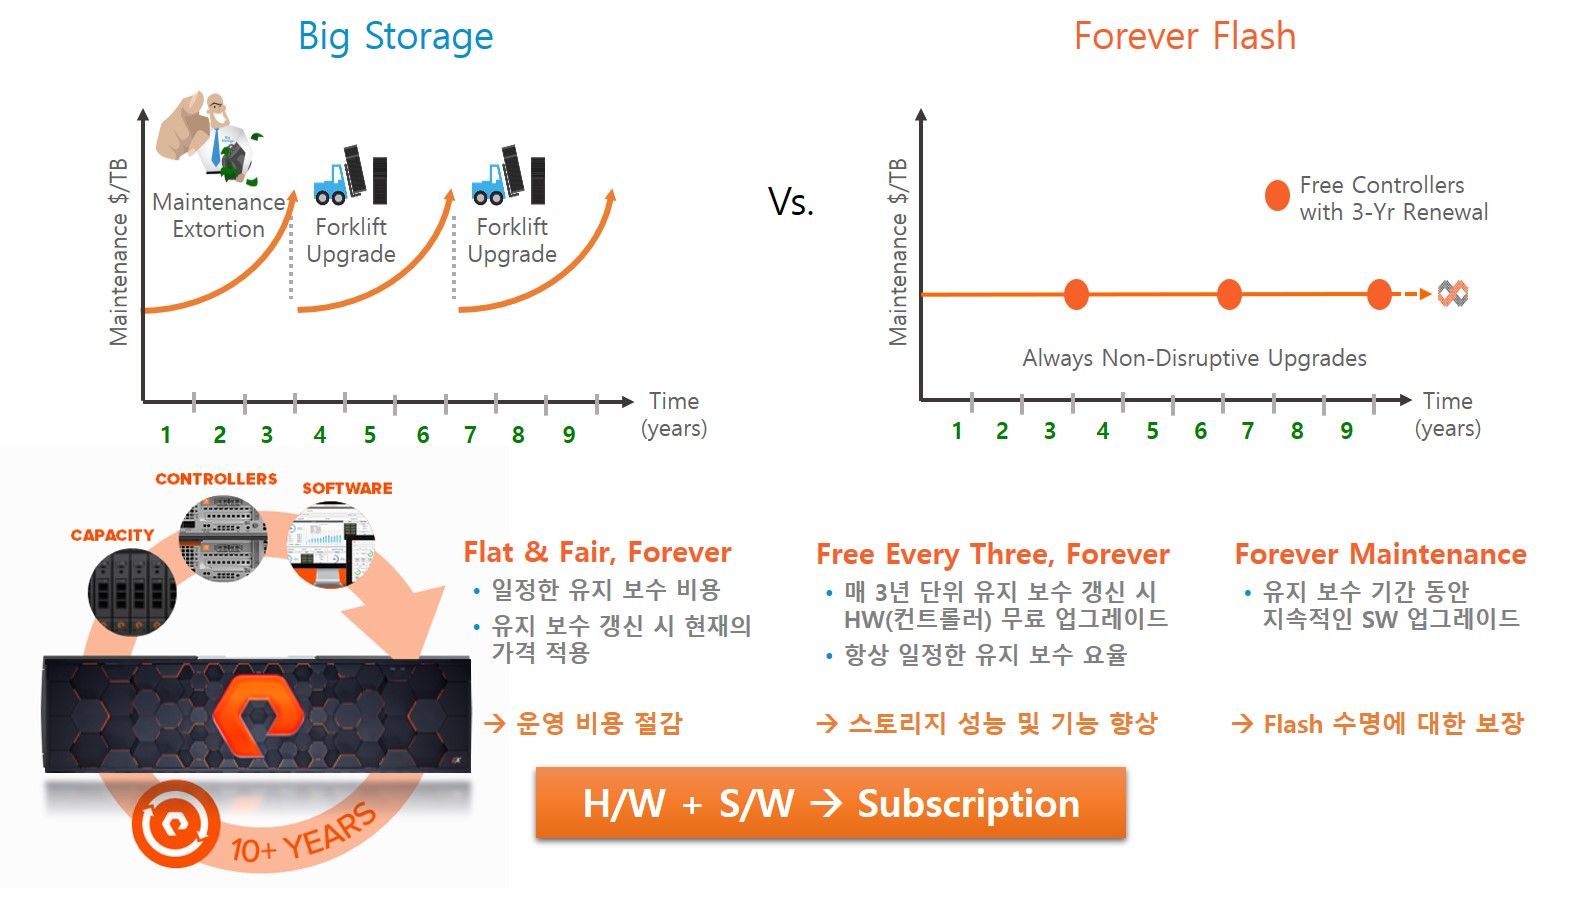 image_PURESTORAGE_11